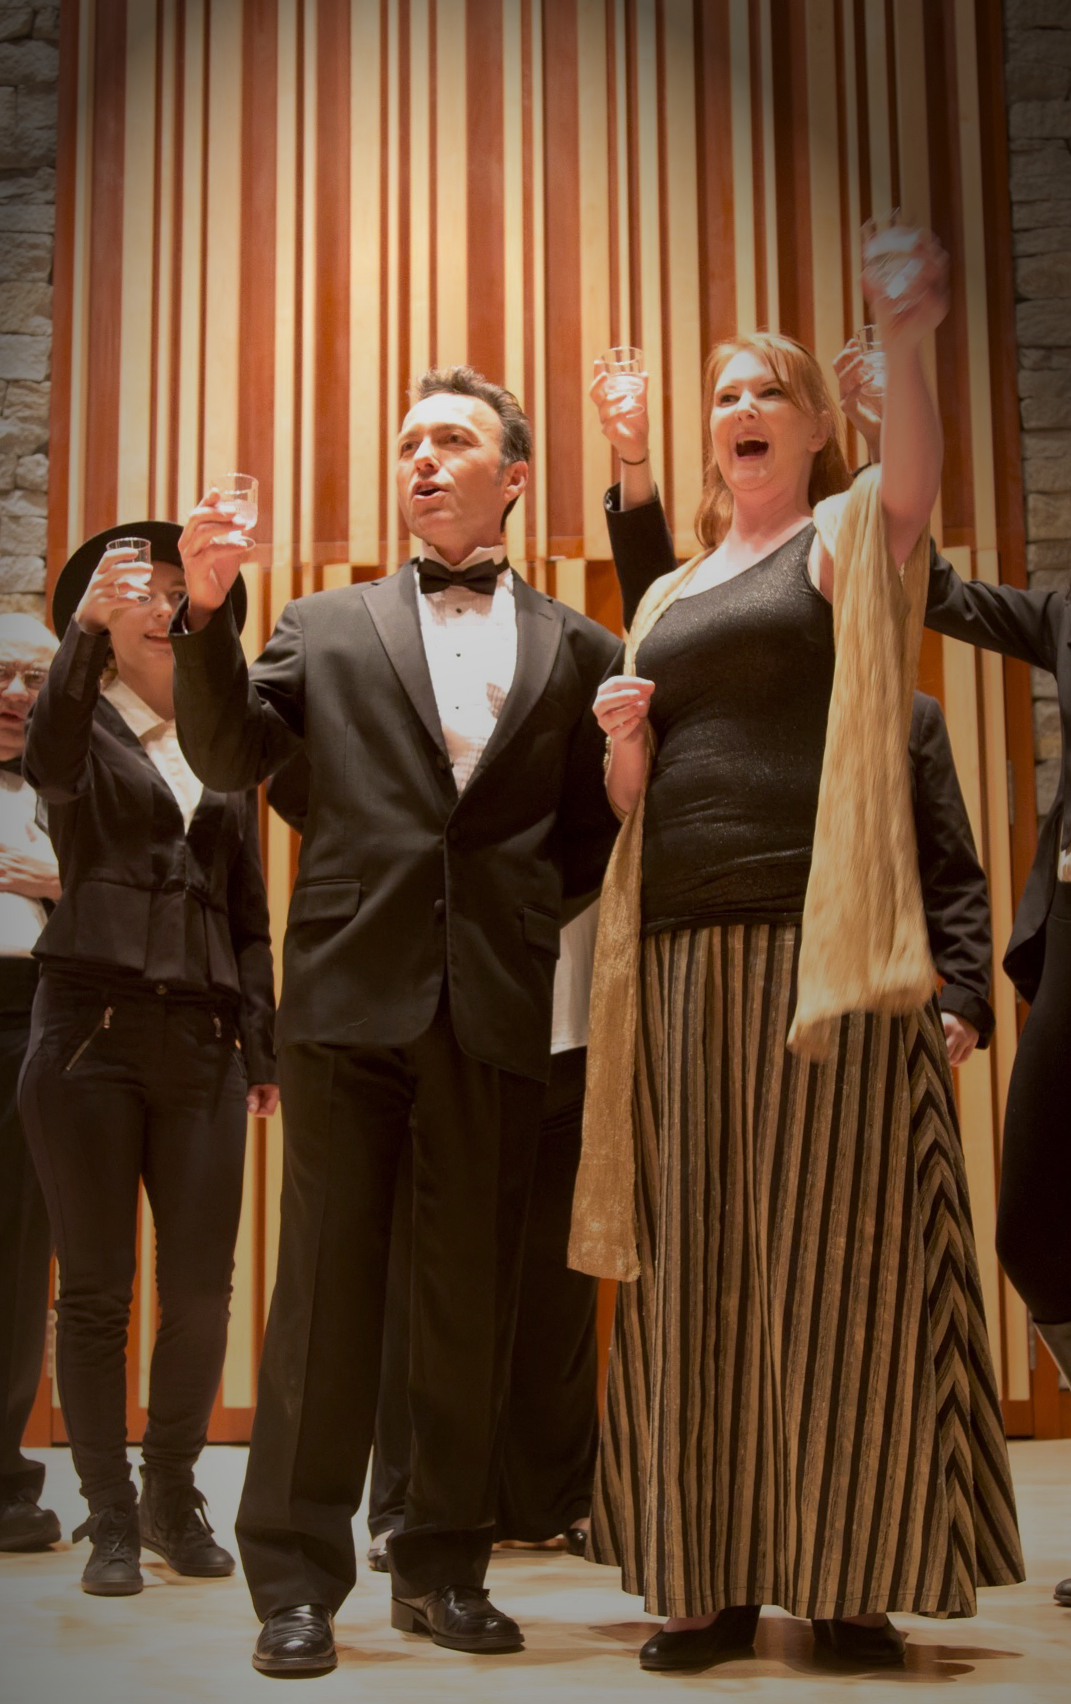 Carlos in the Opera Ensemble